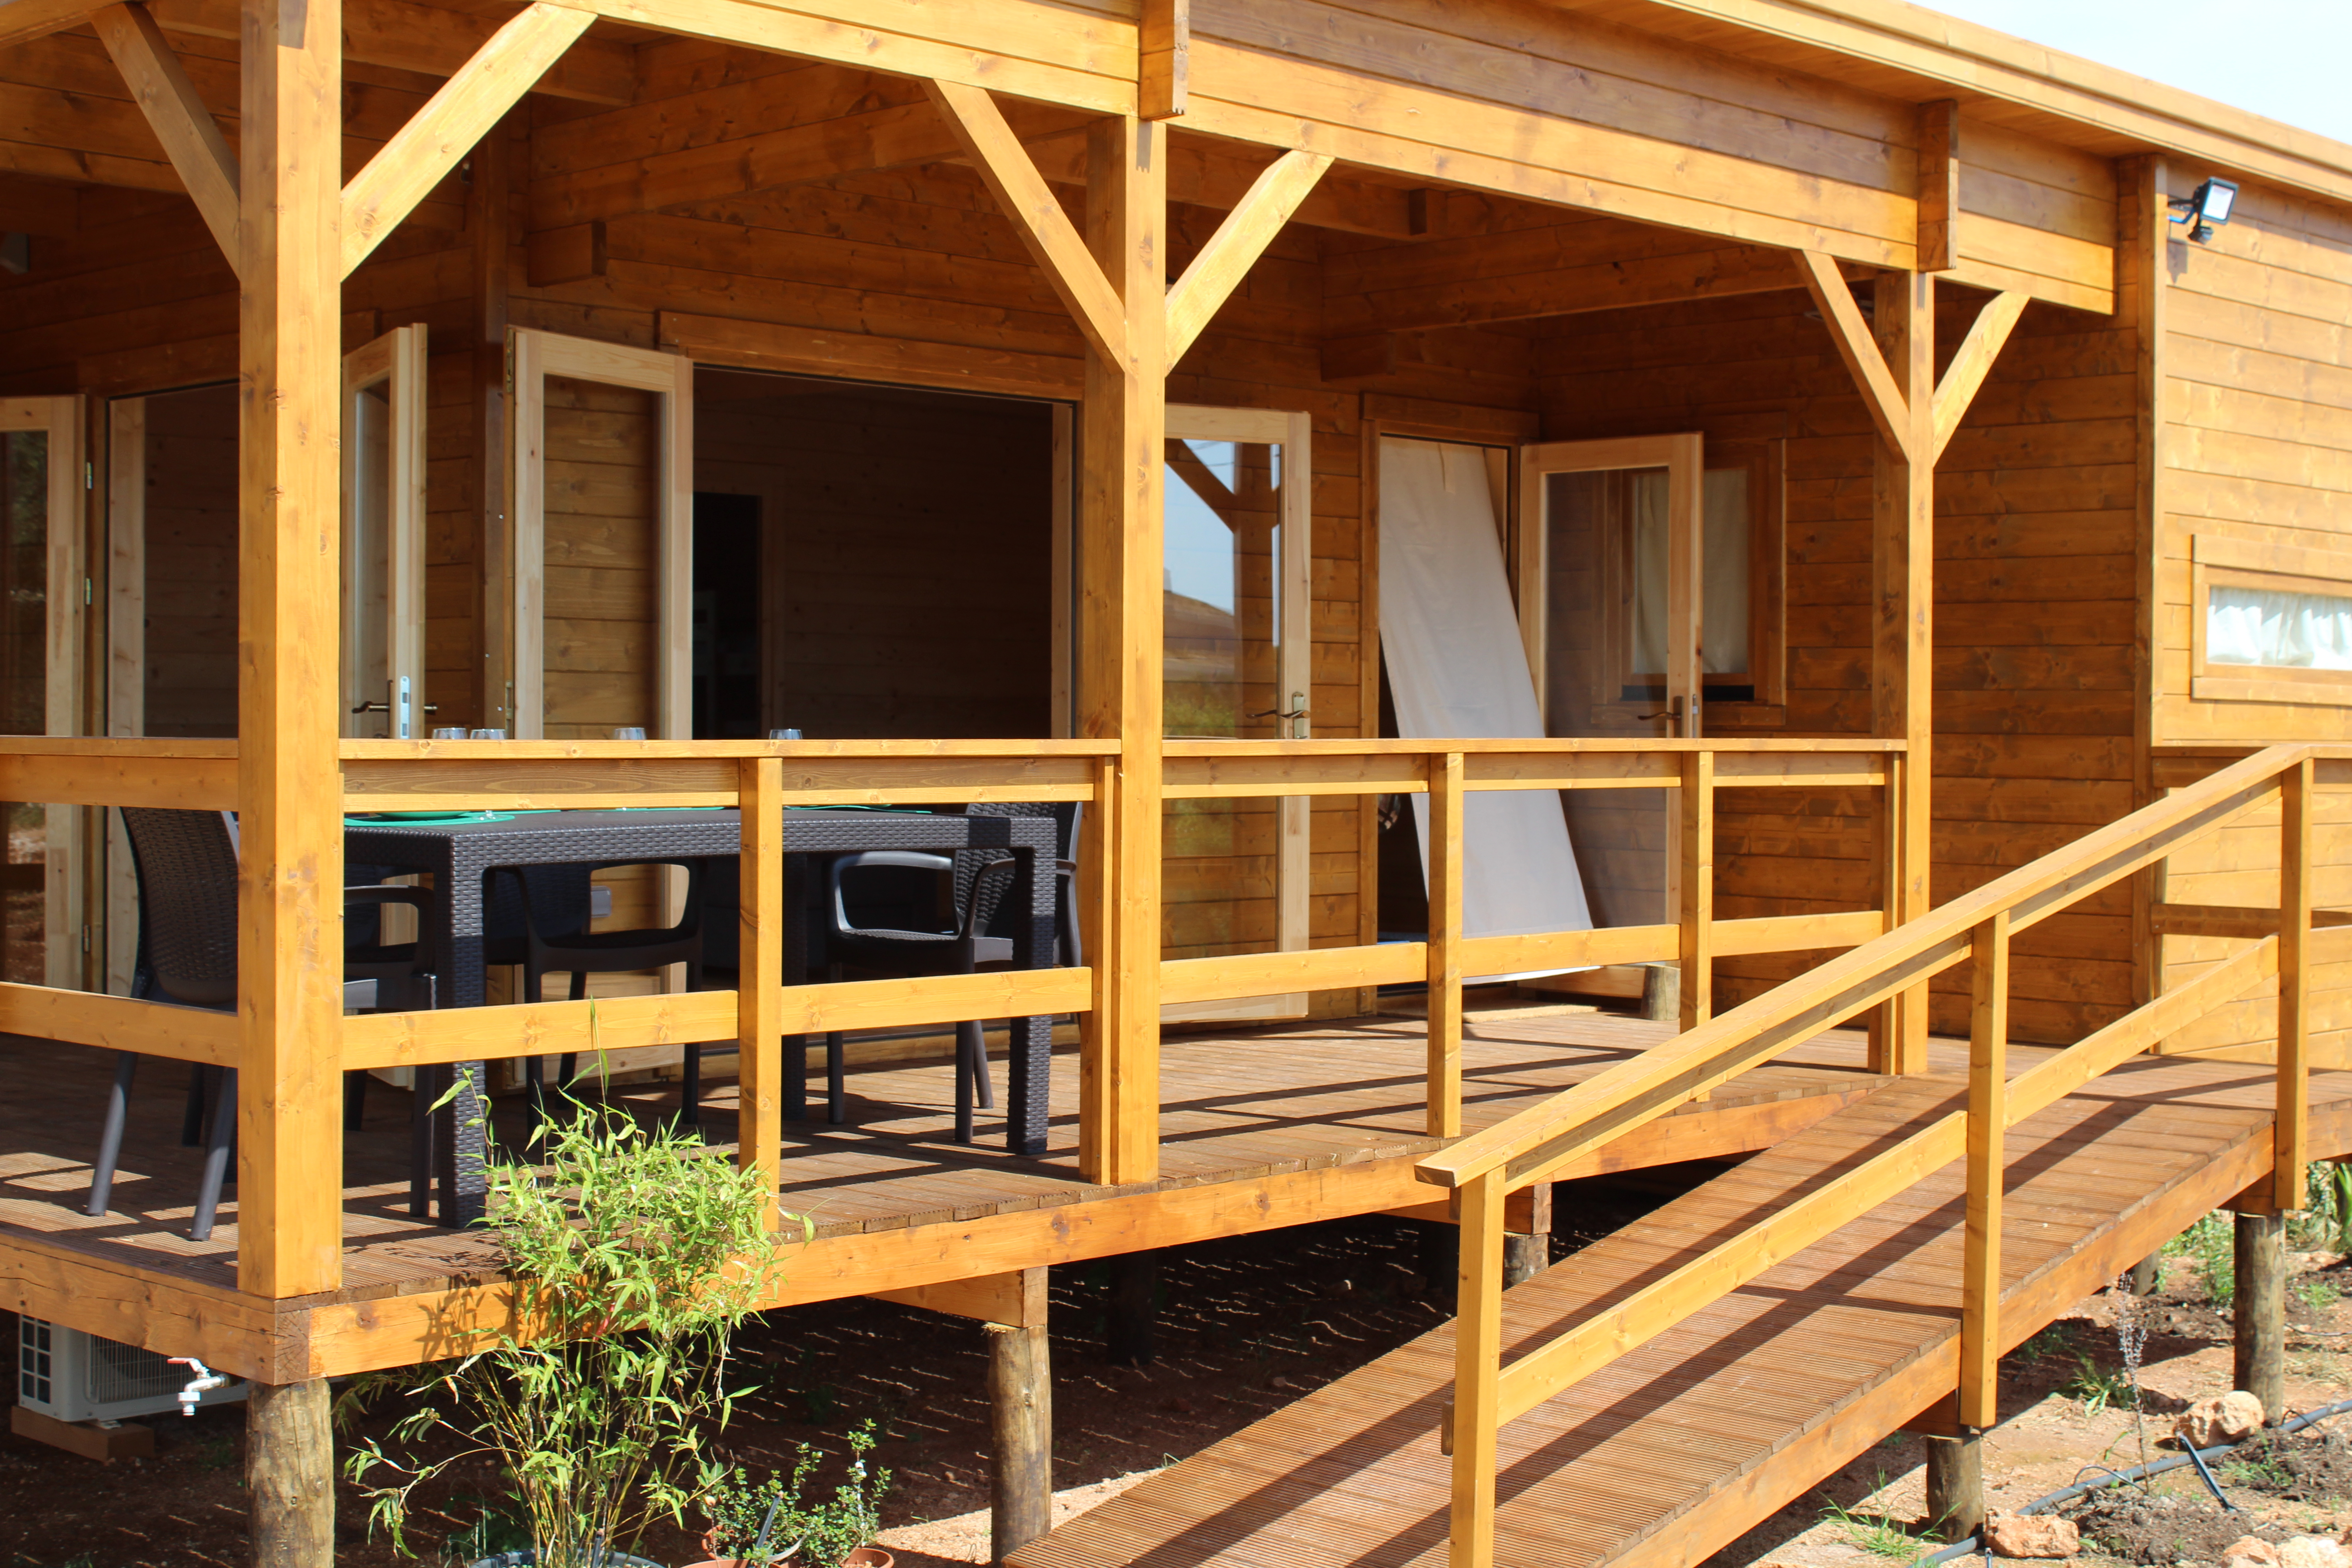 Holiday apartments and villas for rent, Chalet T2 in Boliqueime, Portugal Algarve, REF_IMG_4444_4448